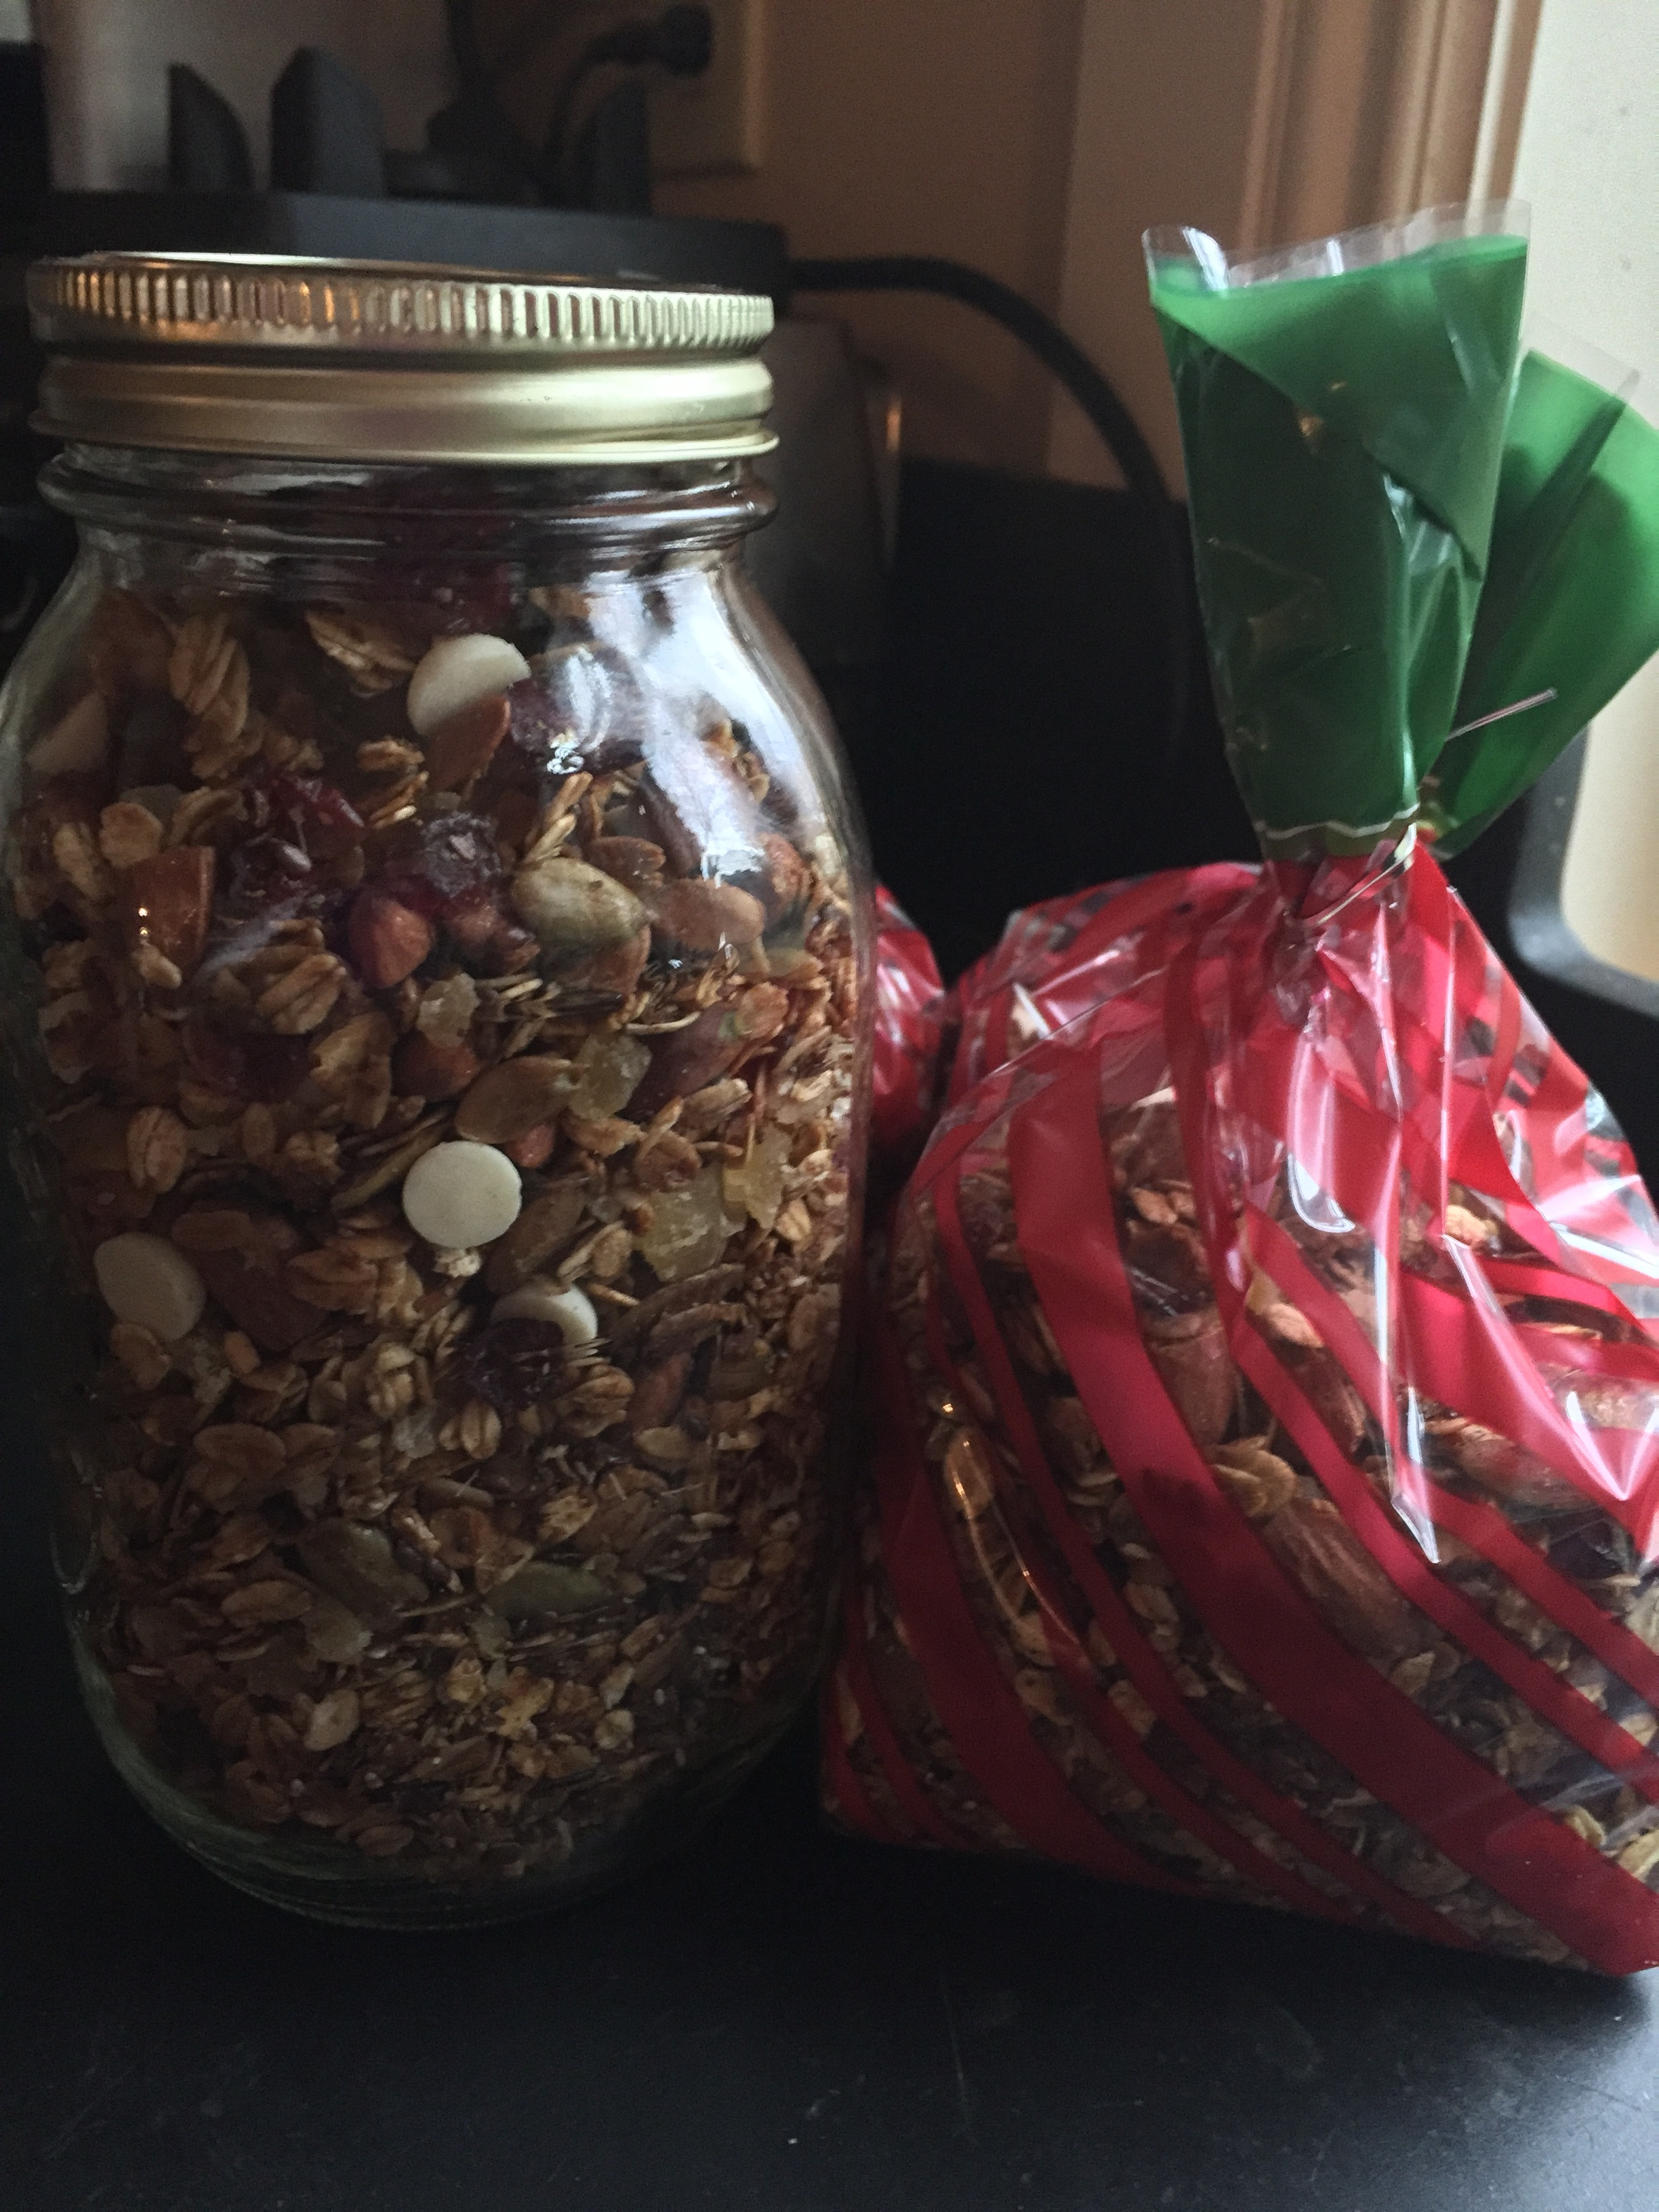 Ultimate spiced holiday granola. Some for me, some for you...